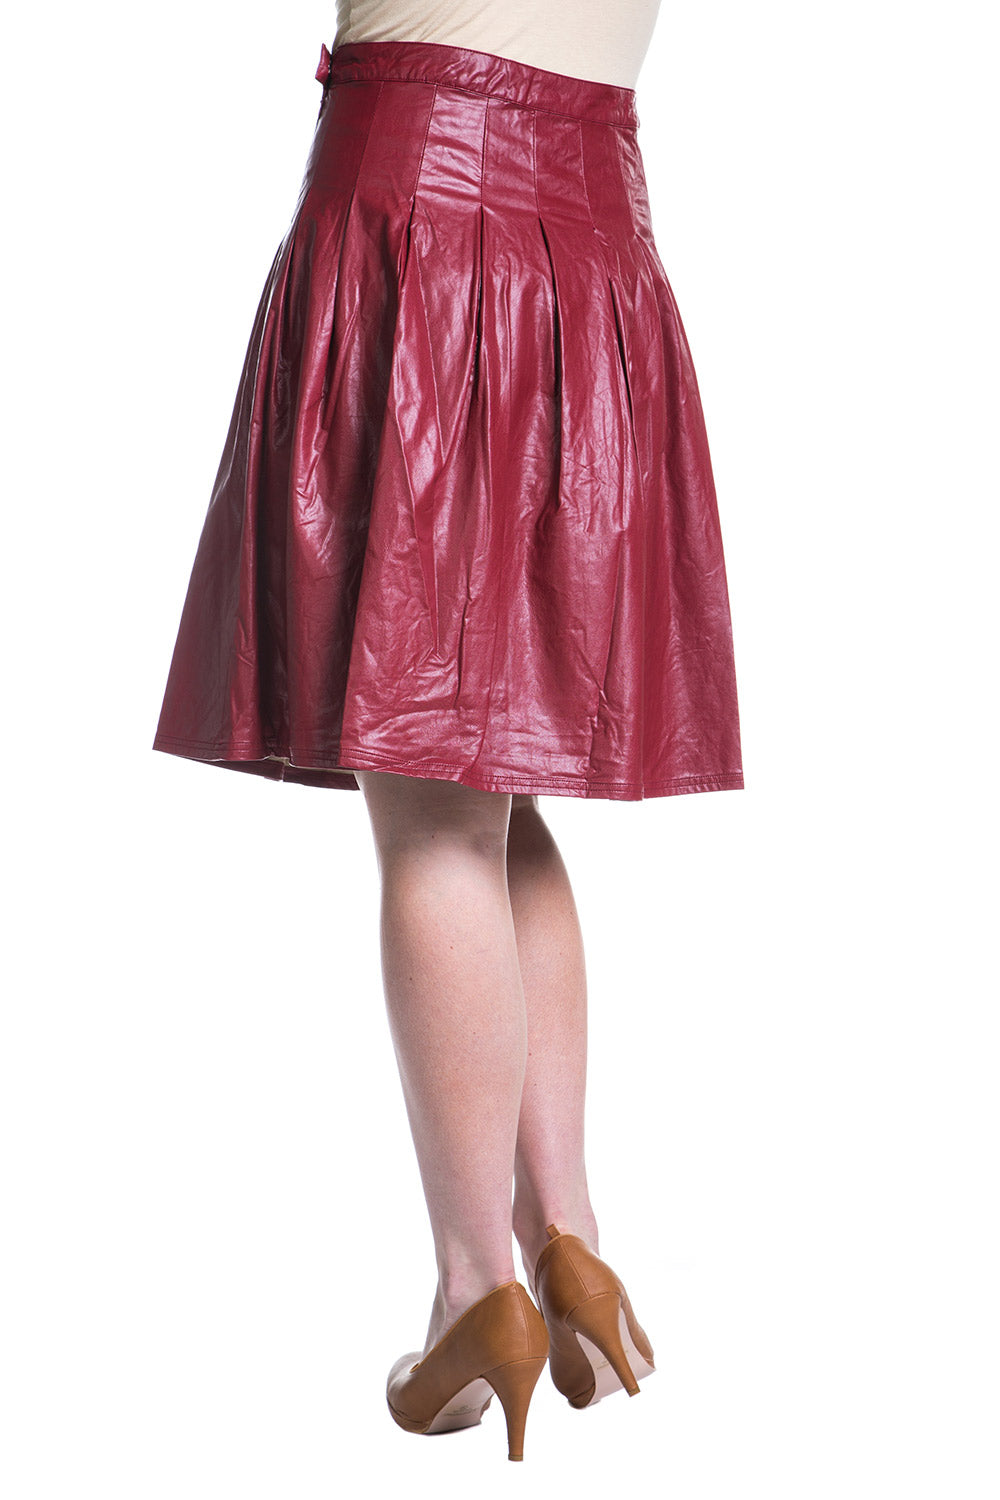 Type 3 Gladiator Skirt